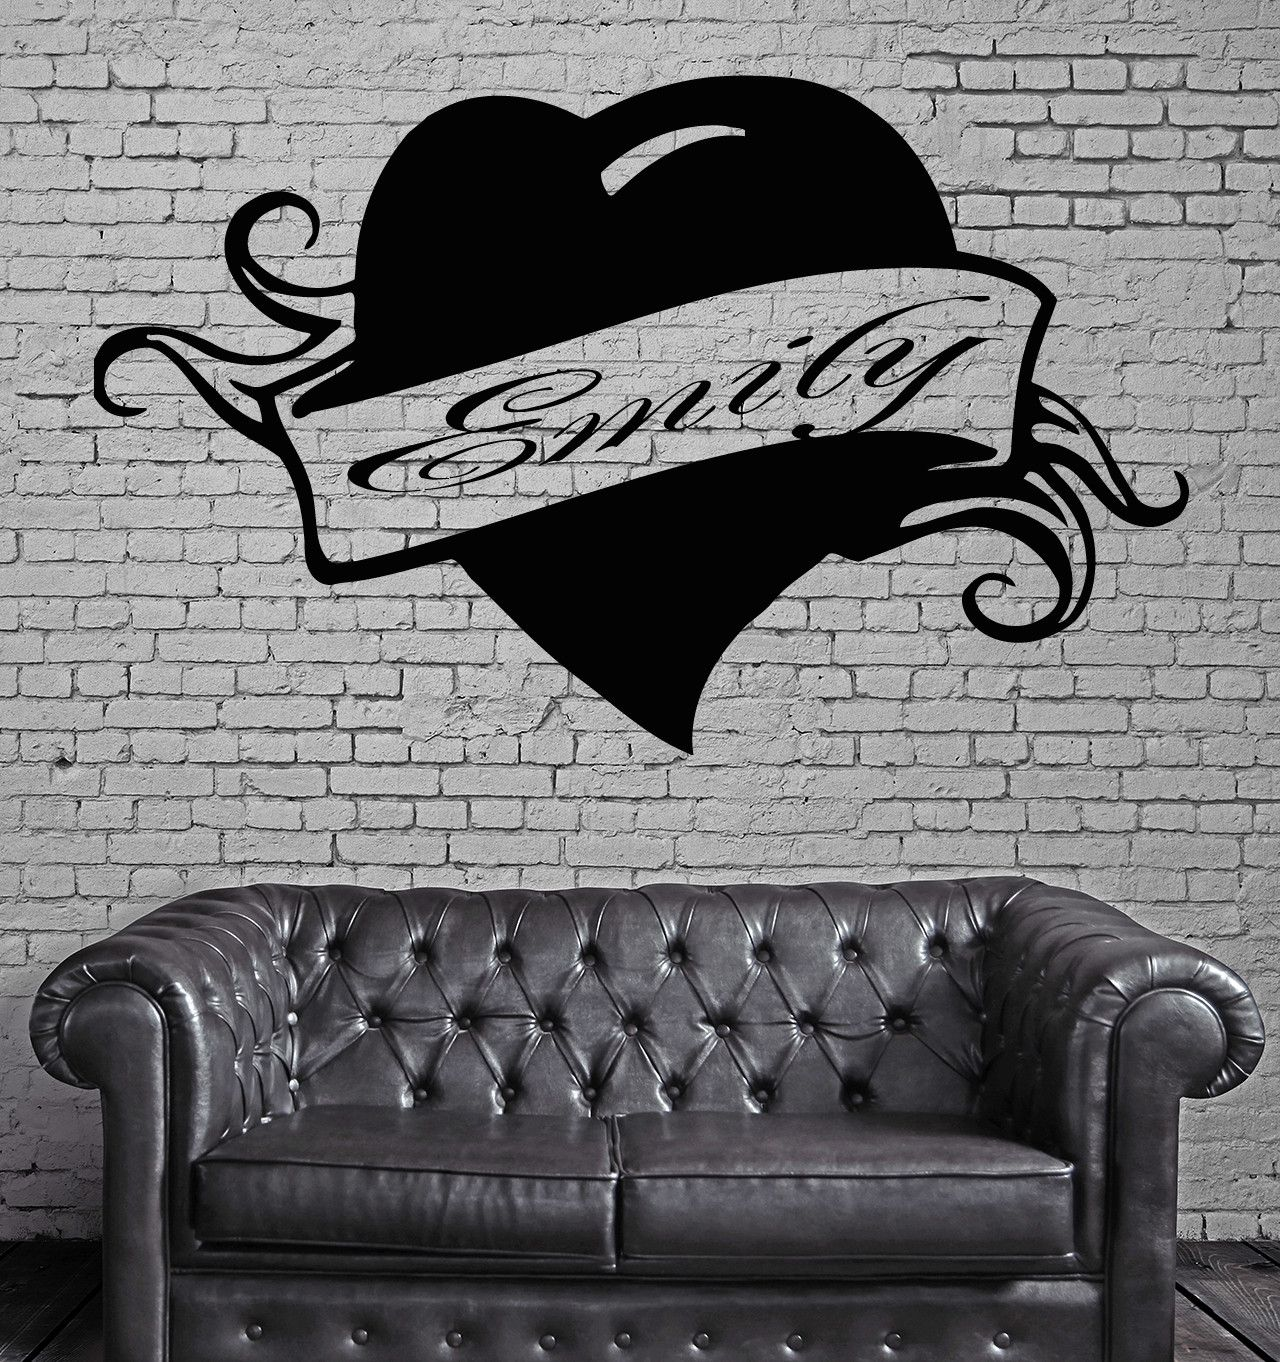 Emily Personalized Name Lettering Custom Wall Art Decor Vinyl - Custom wall vinyl lettering